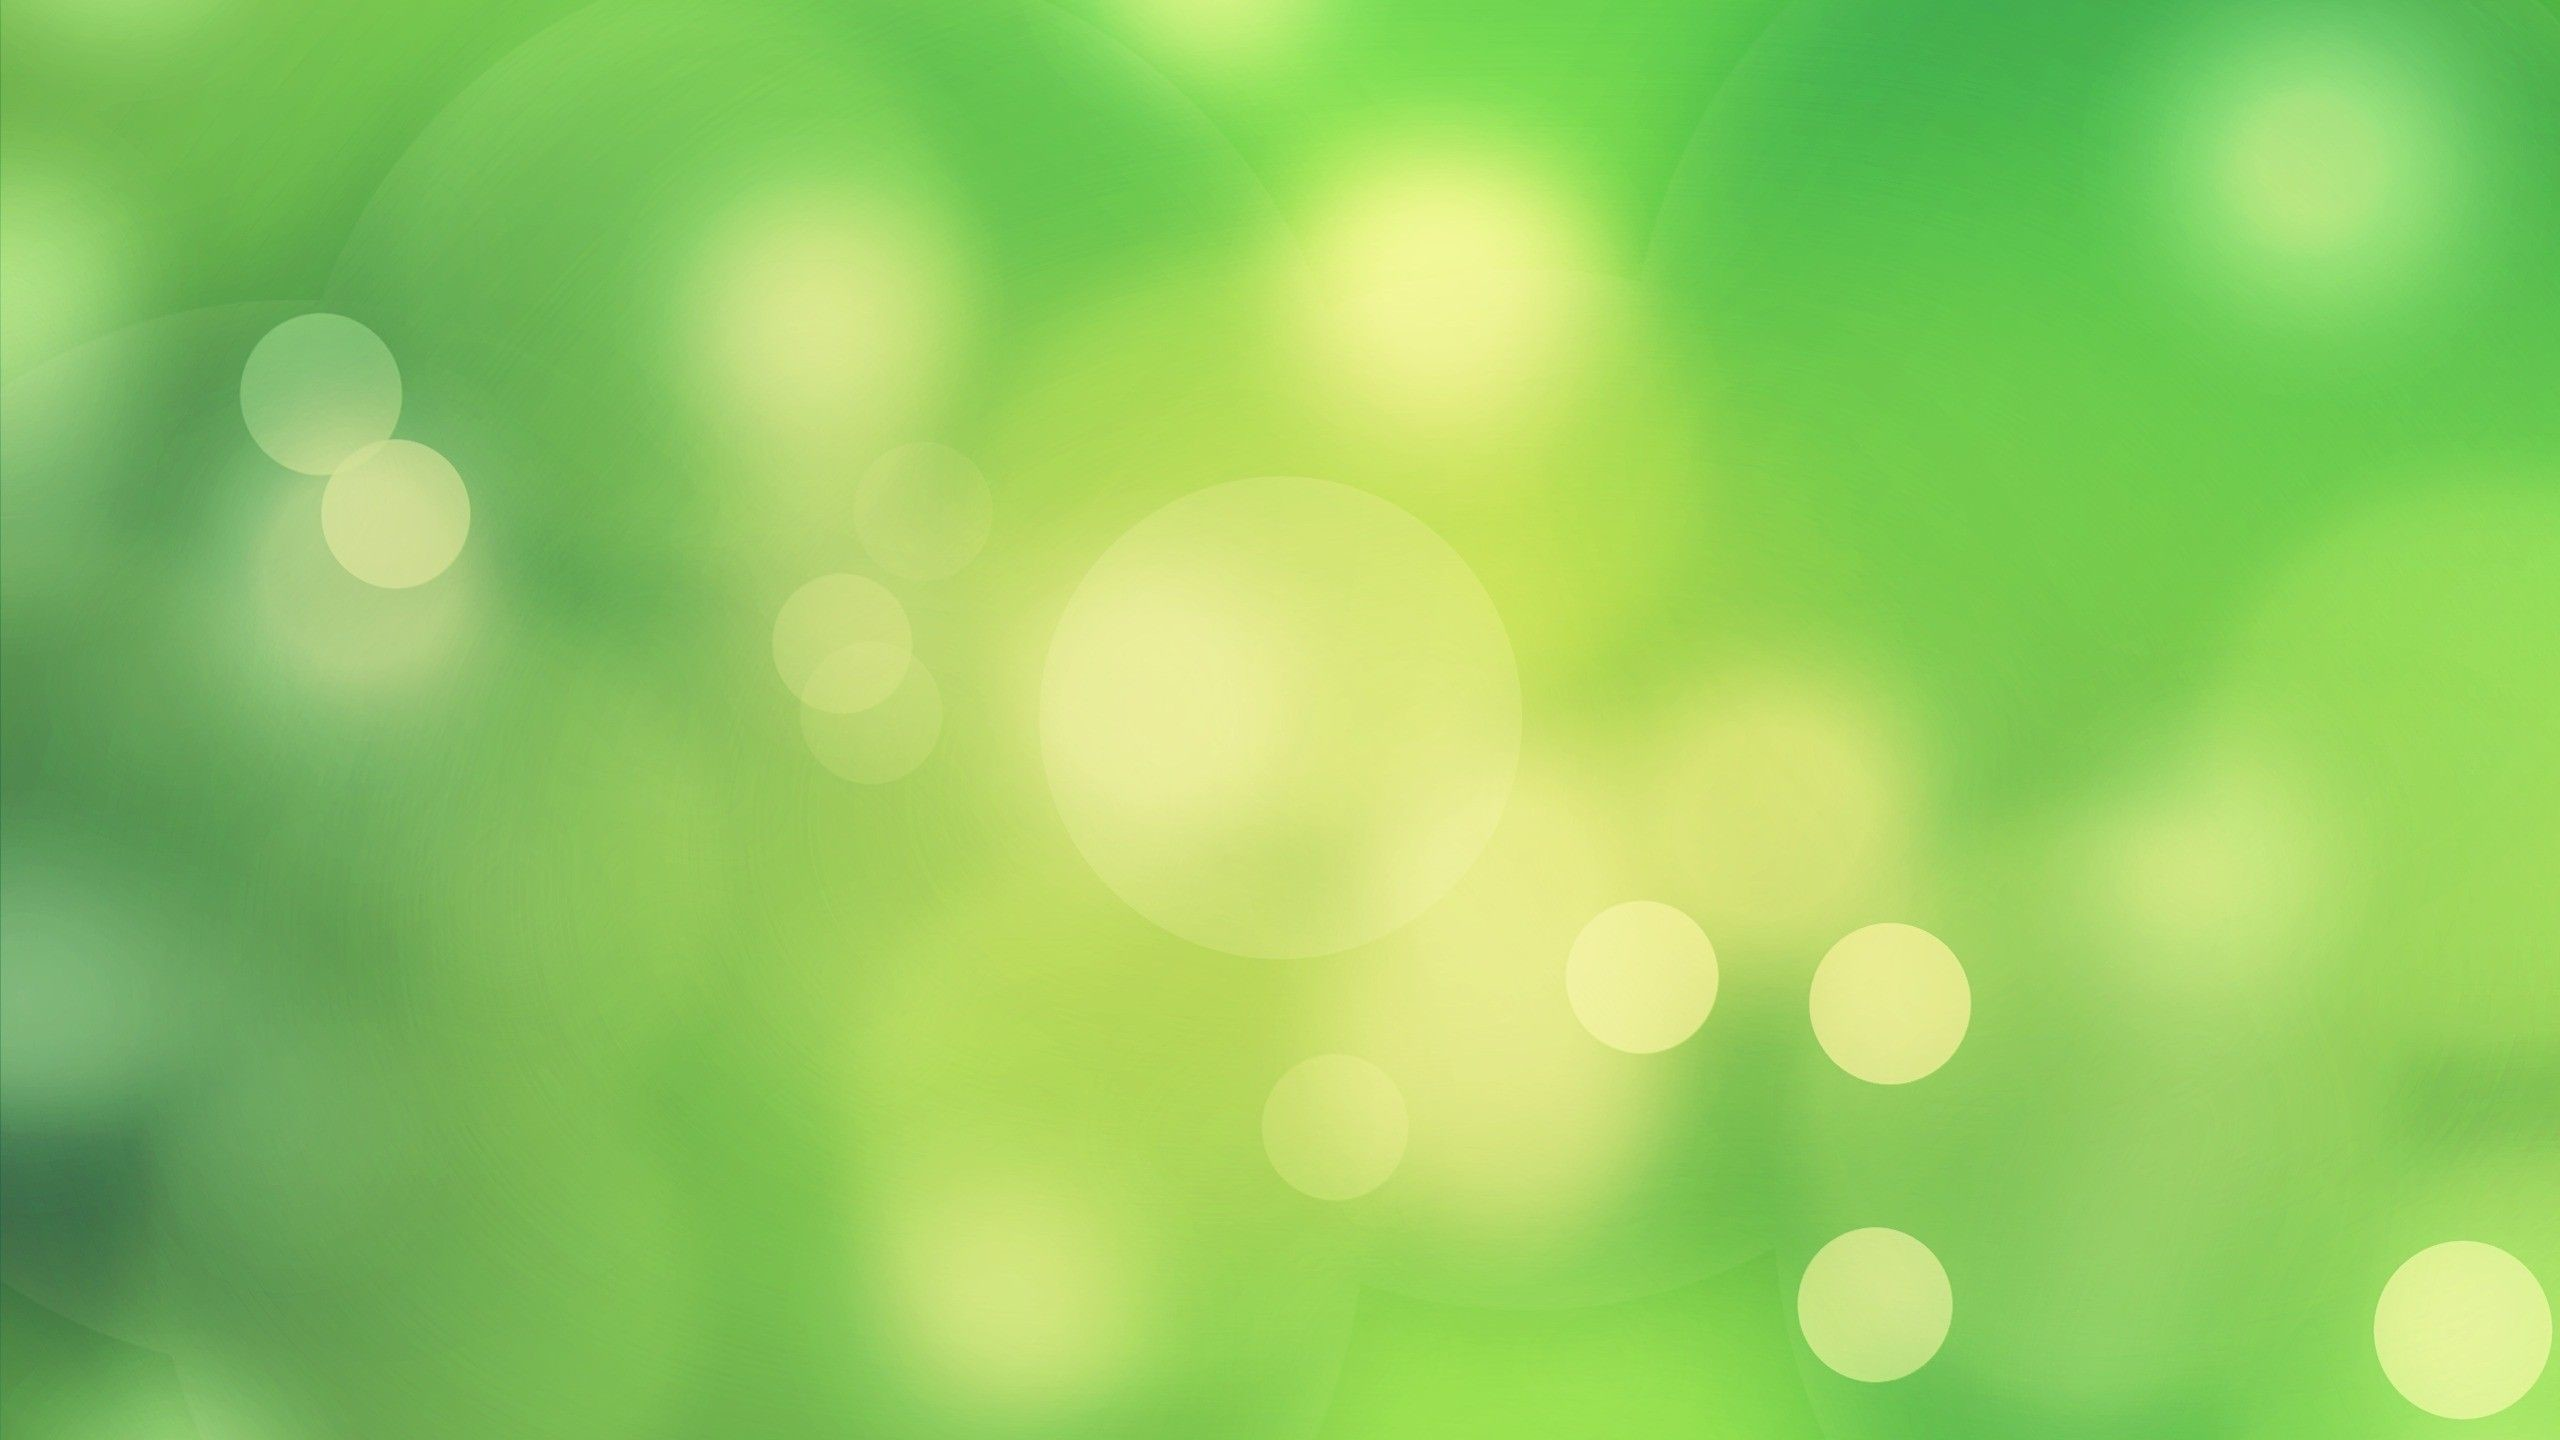 2560x1440 Download Free Light Green Wallpaper | saba wallpapers